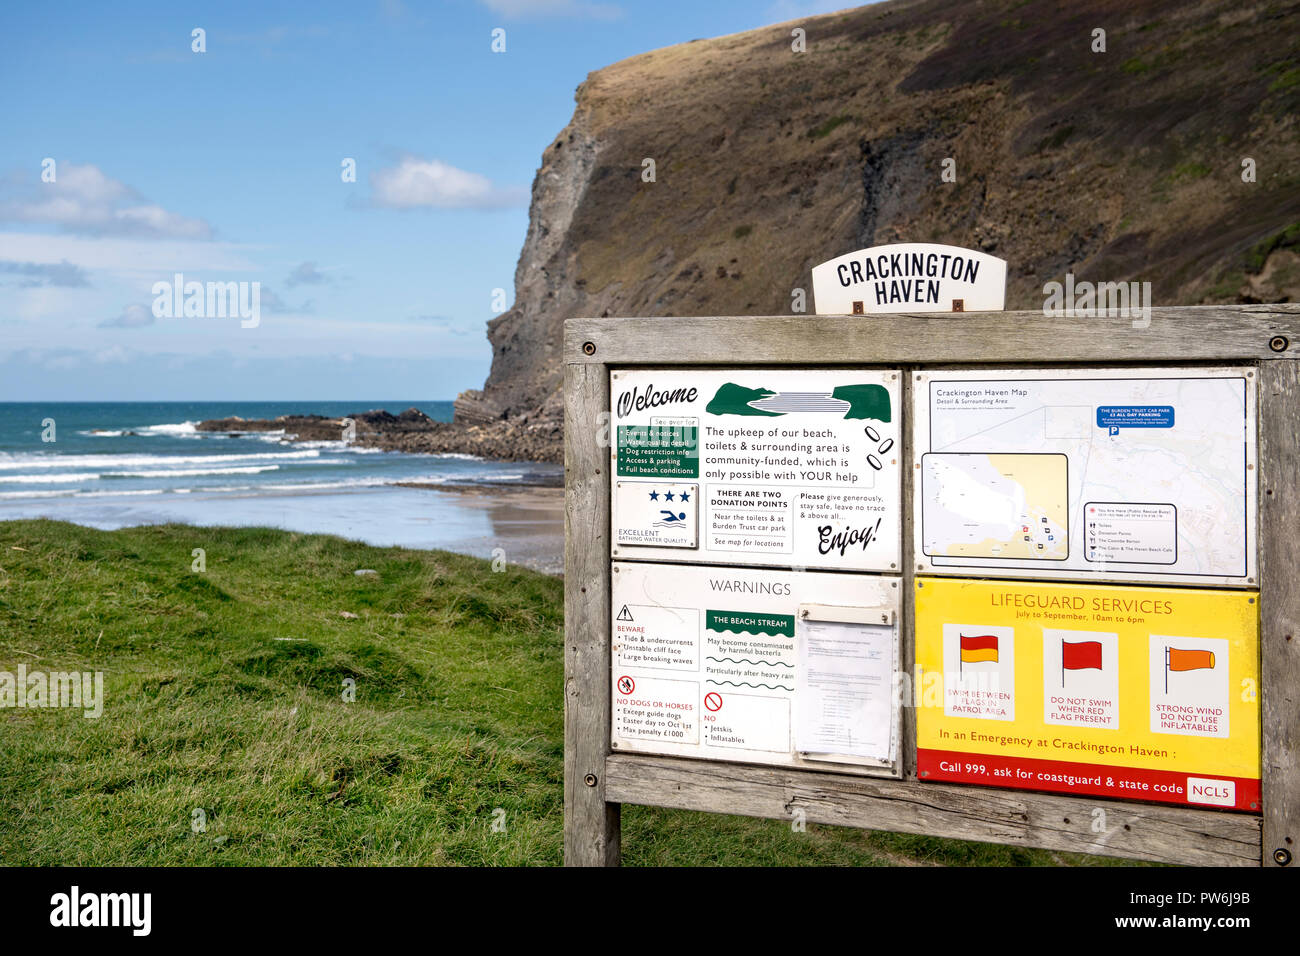 Information board at  Crackington Haven beach in Cornwall, England, UK - Stock Image